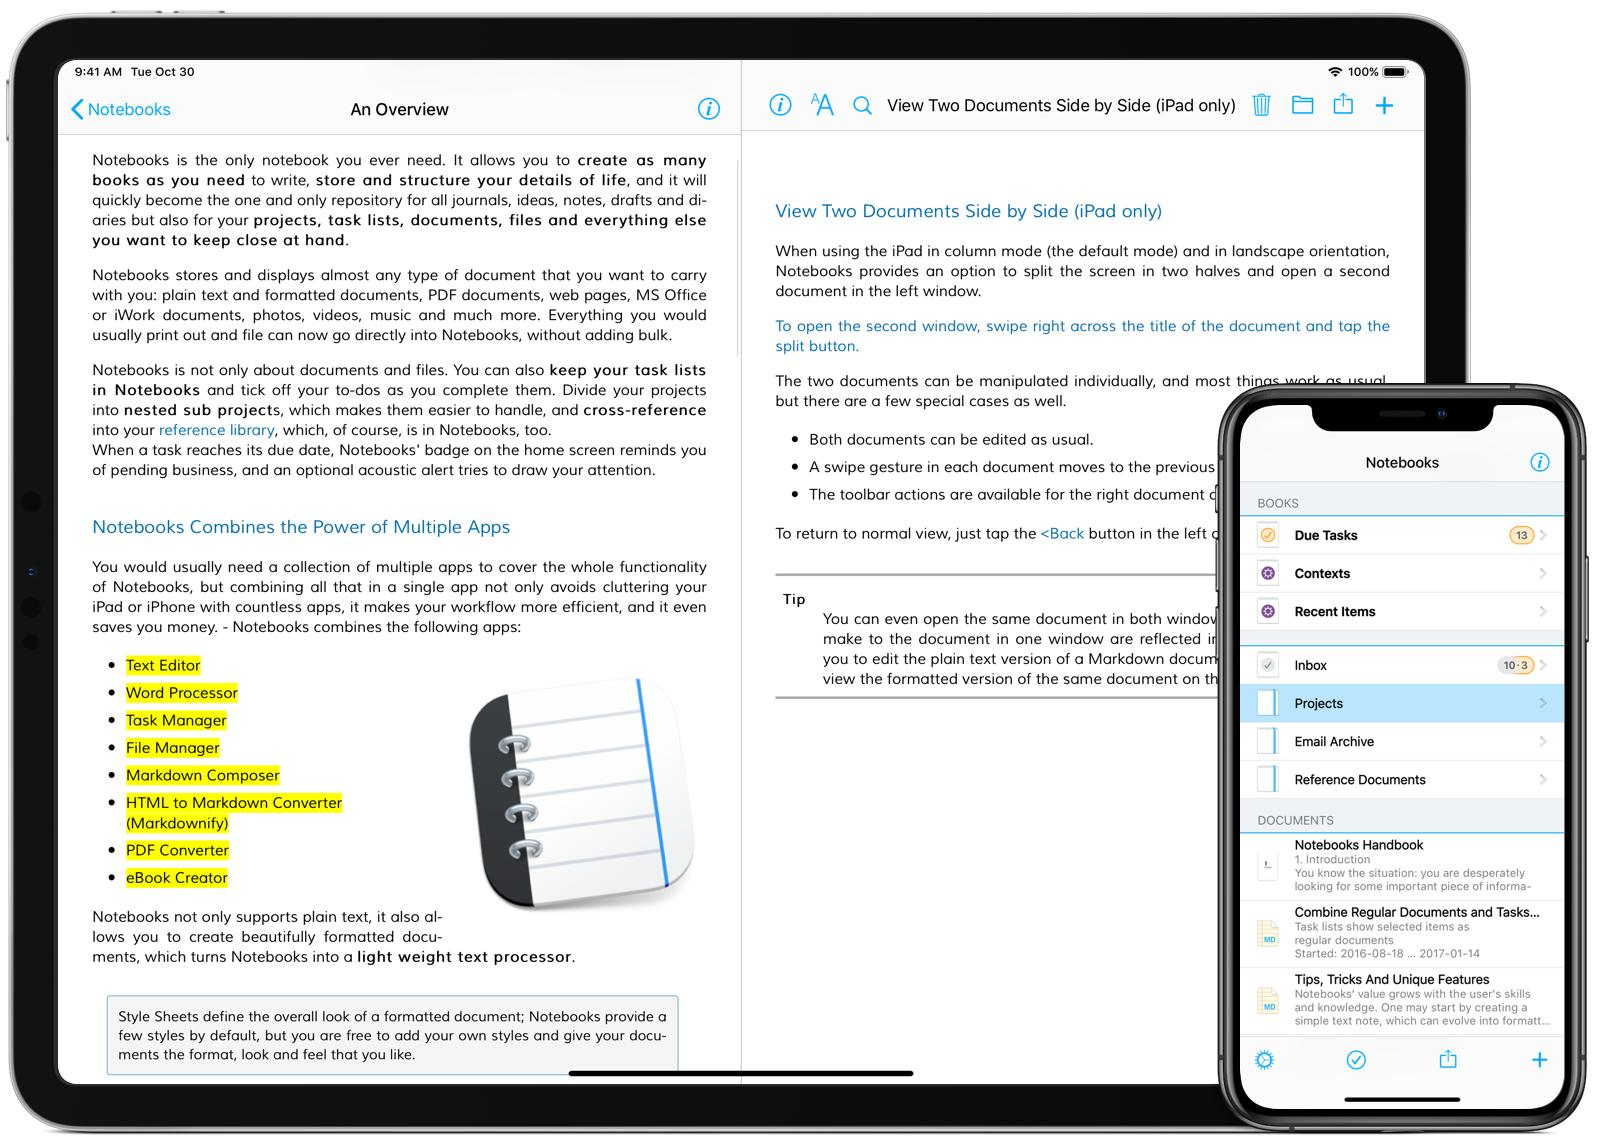 Notebooks for iPhone and iPad